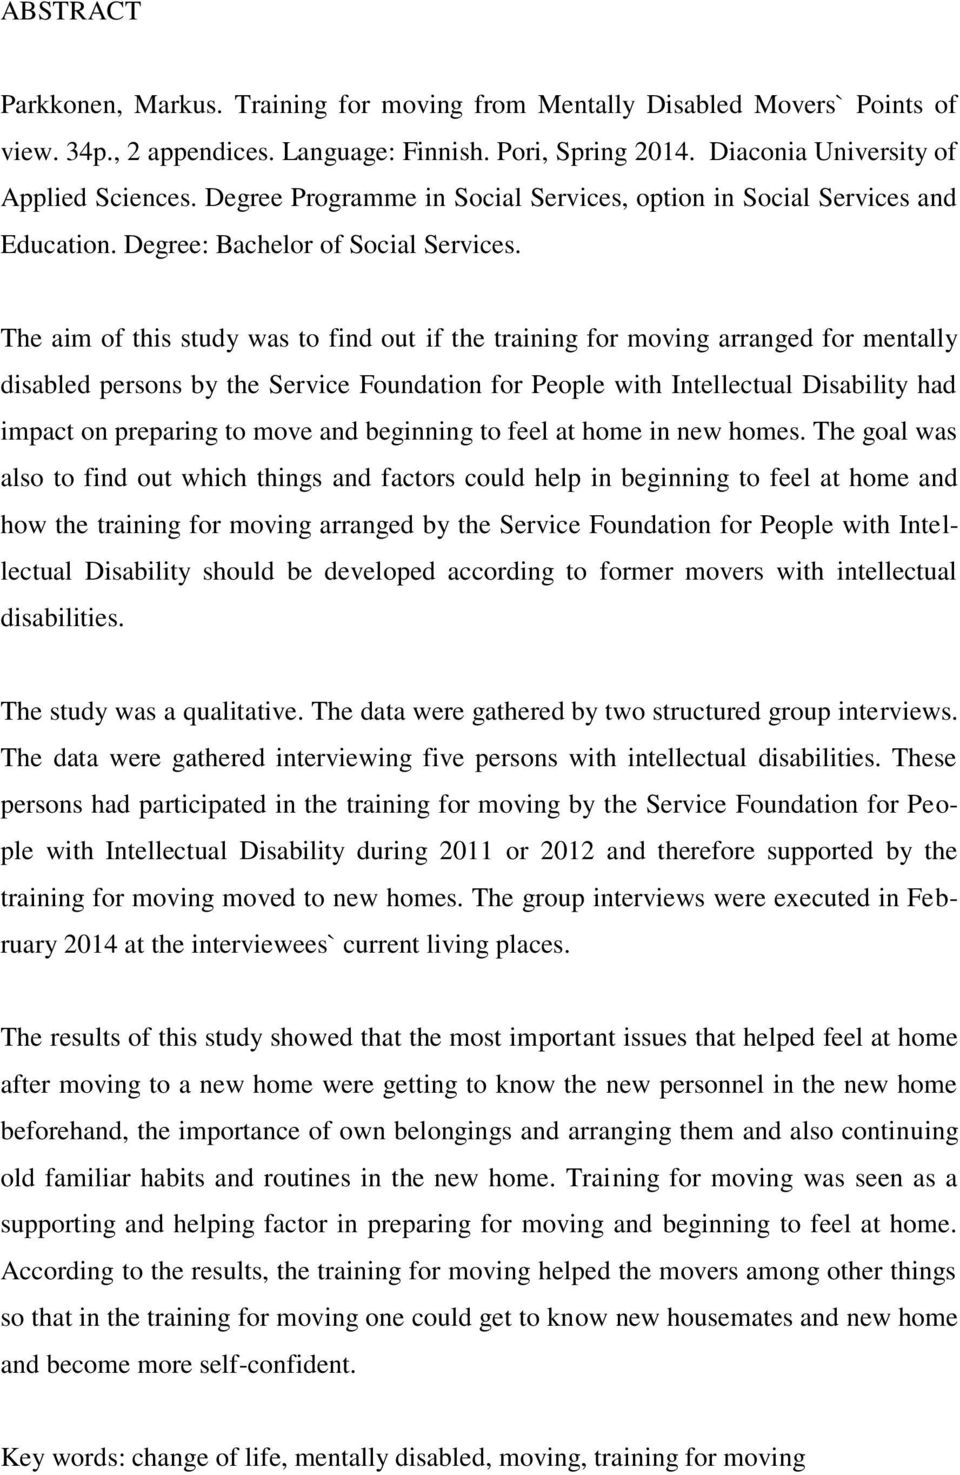 The aim of this study was to find out if the training for moving arranged for mentally disabled persons by the Service Foundation for People with Intellectual Disability had impact on preparing to